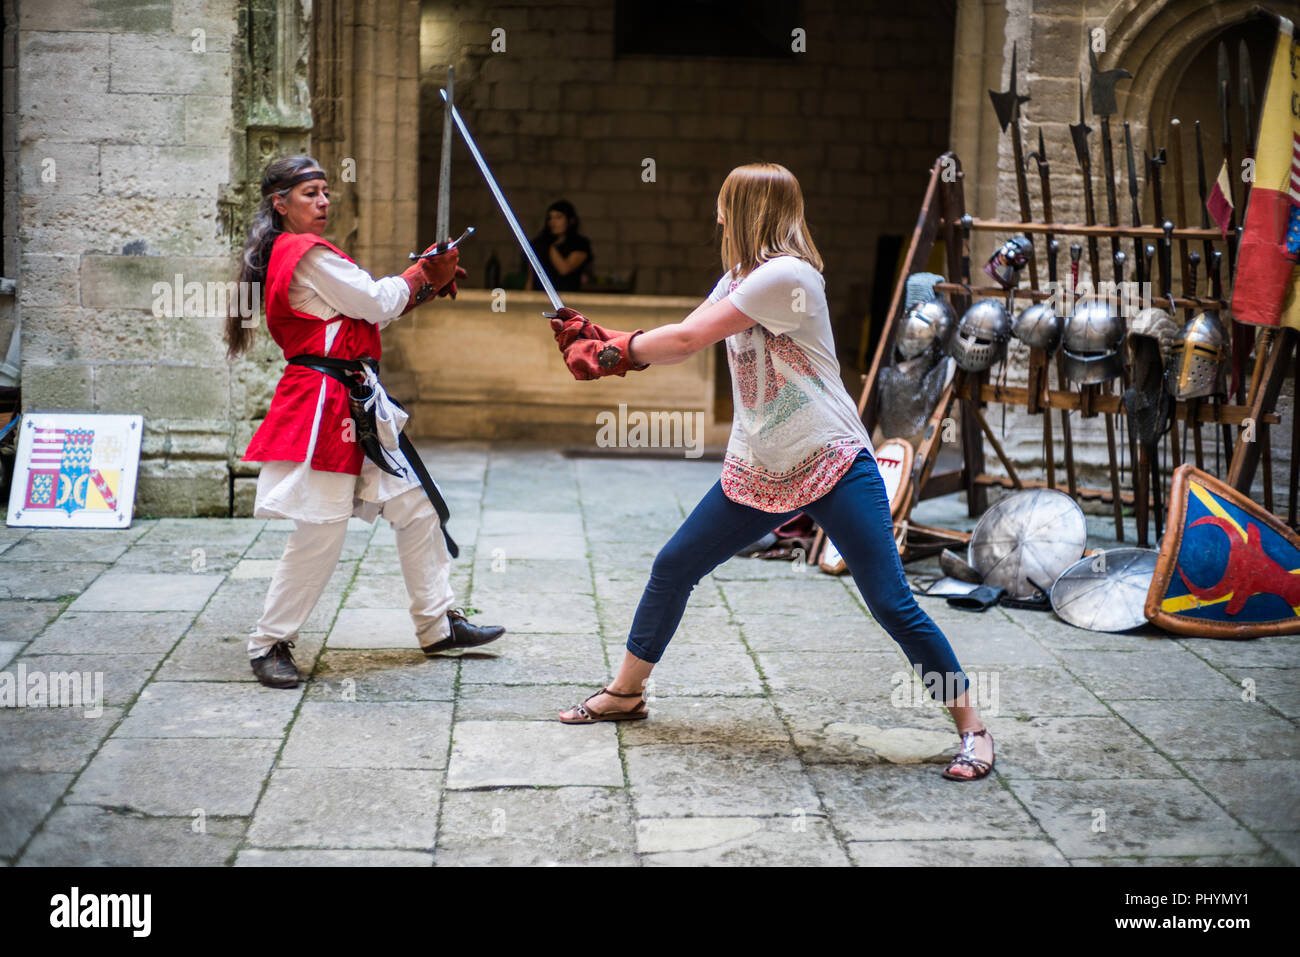 Swordplay in the castle, Tarascon, Provence, France, Europe. - Stock Image